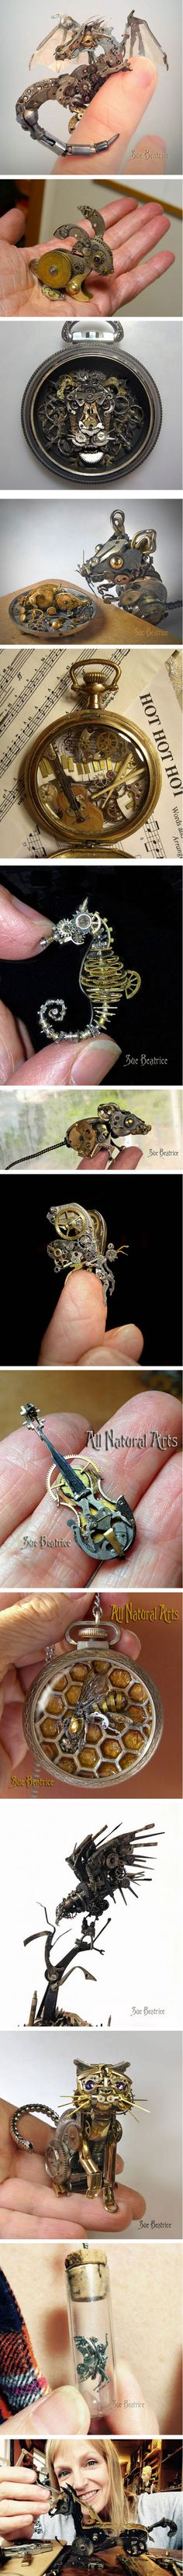 Incredible vision!  Mind & eye! This Artist Recycles Old Watch Parts Into Steampunk Sculptures (By Susan Beatrice)